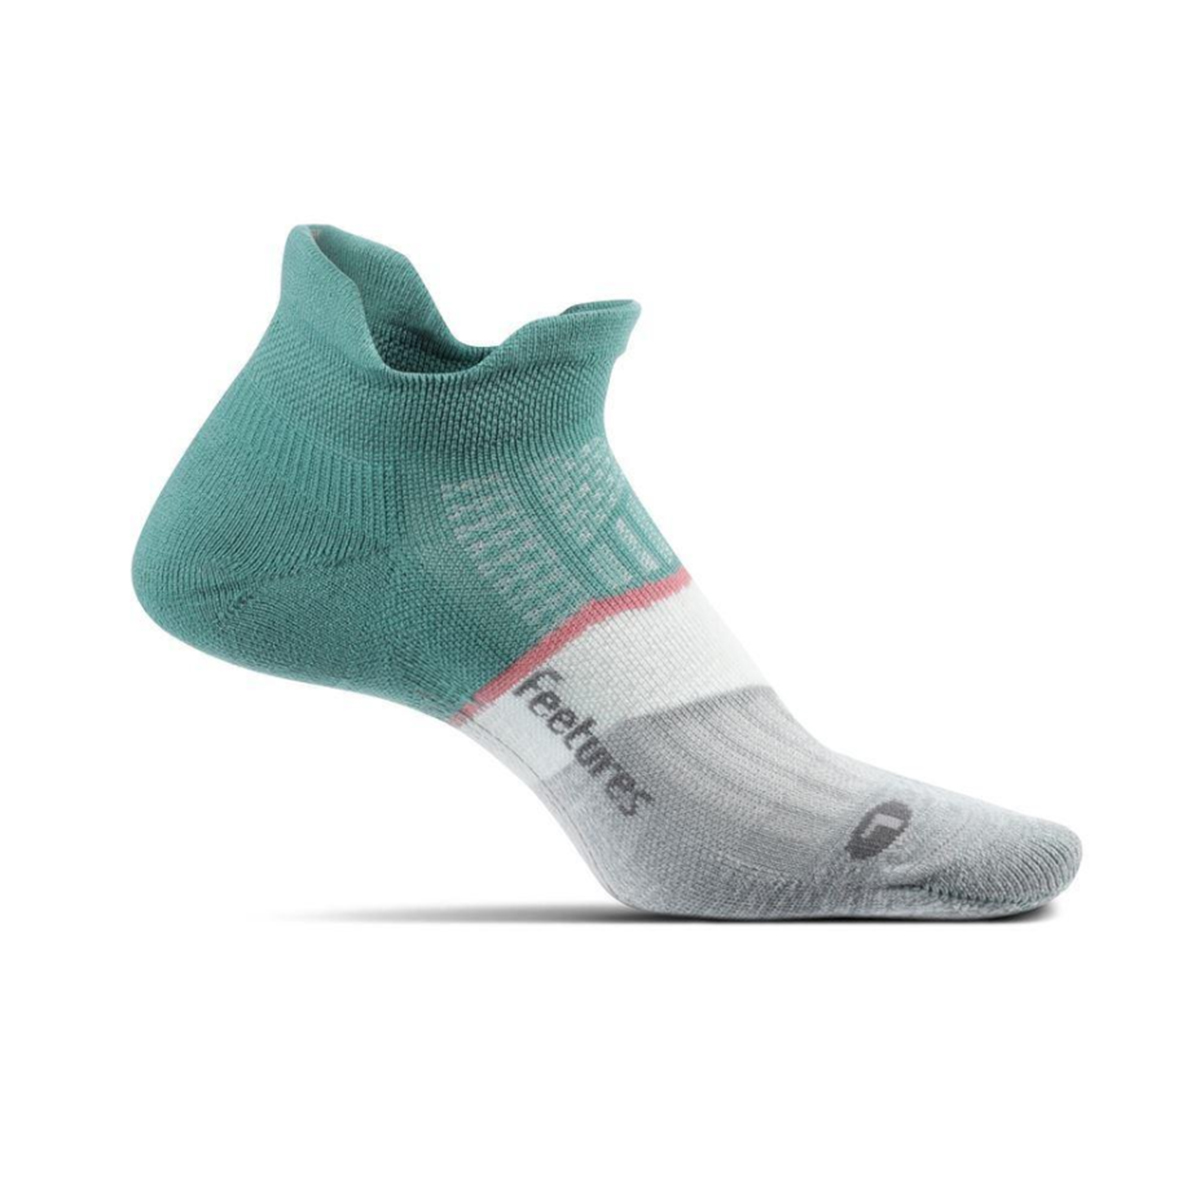 Feetures Elite Max Cushion No Show Tab Socks - Color: Soft Moss - Size: S, Soft Moss, large, image 1